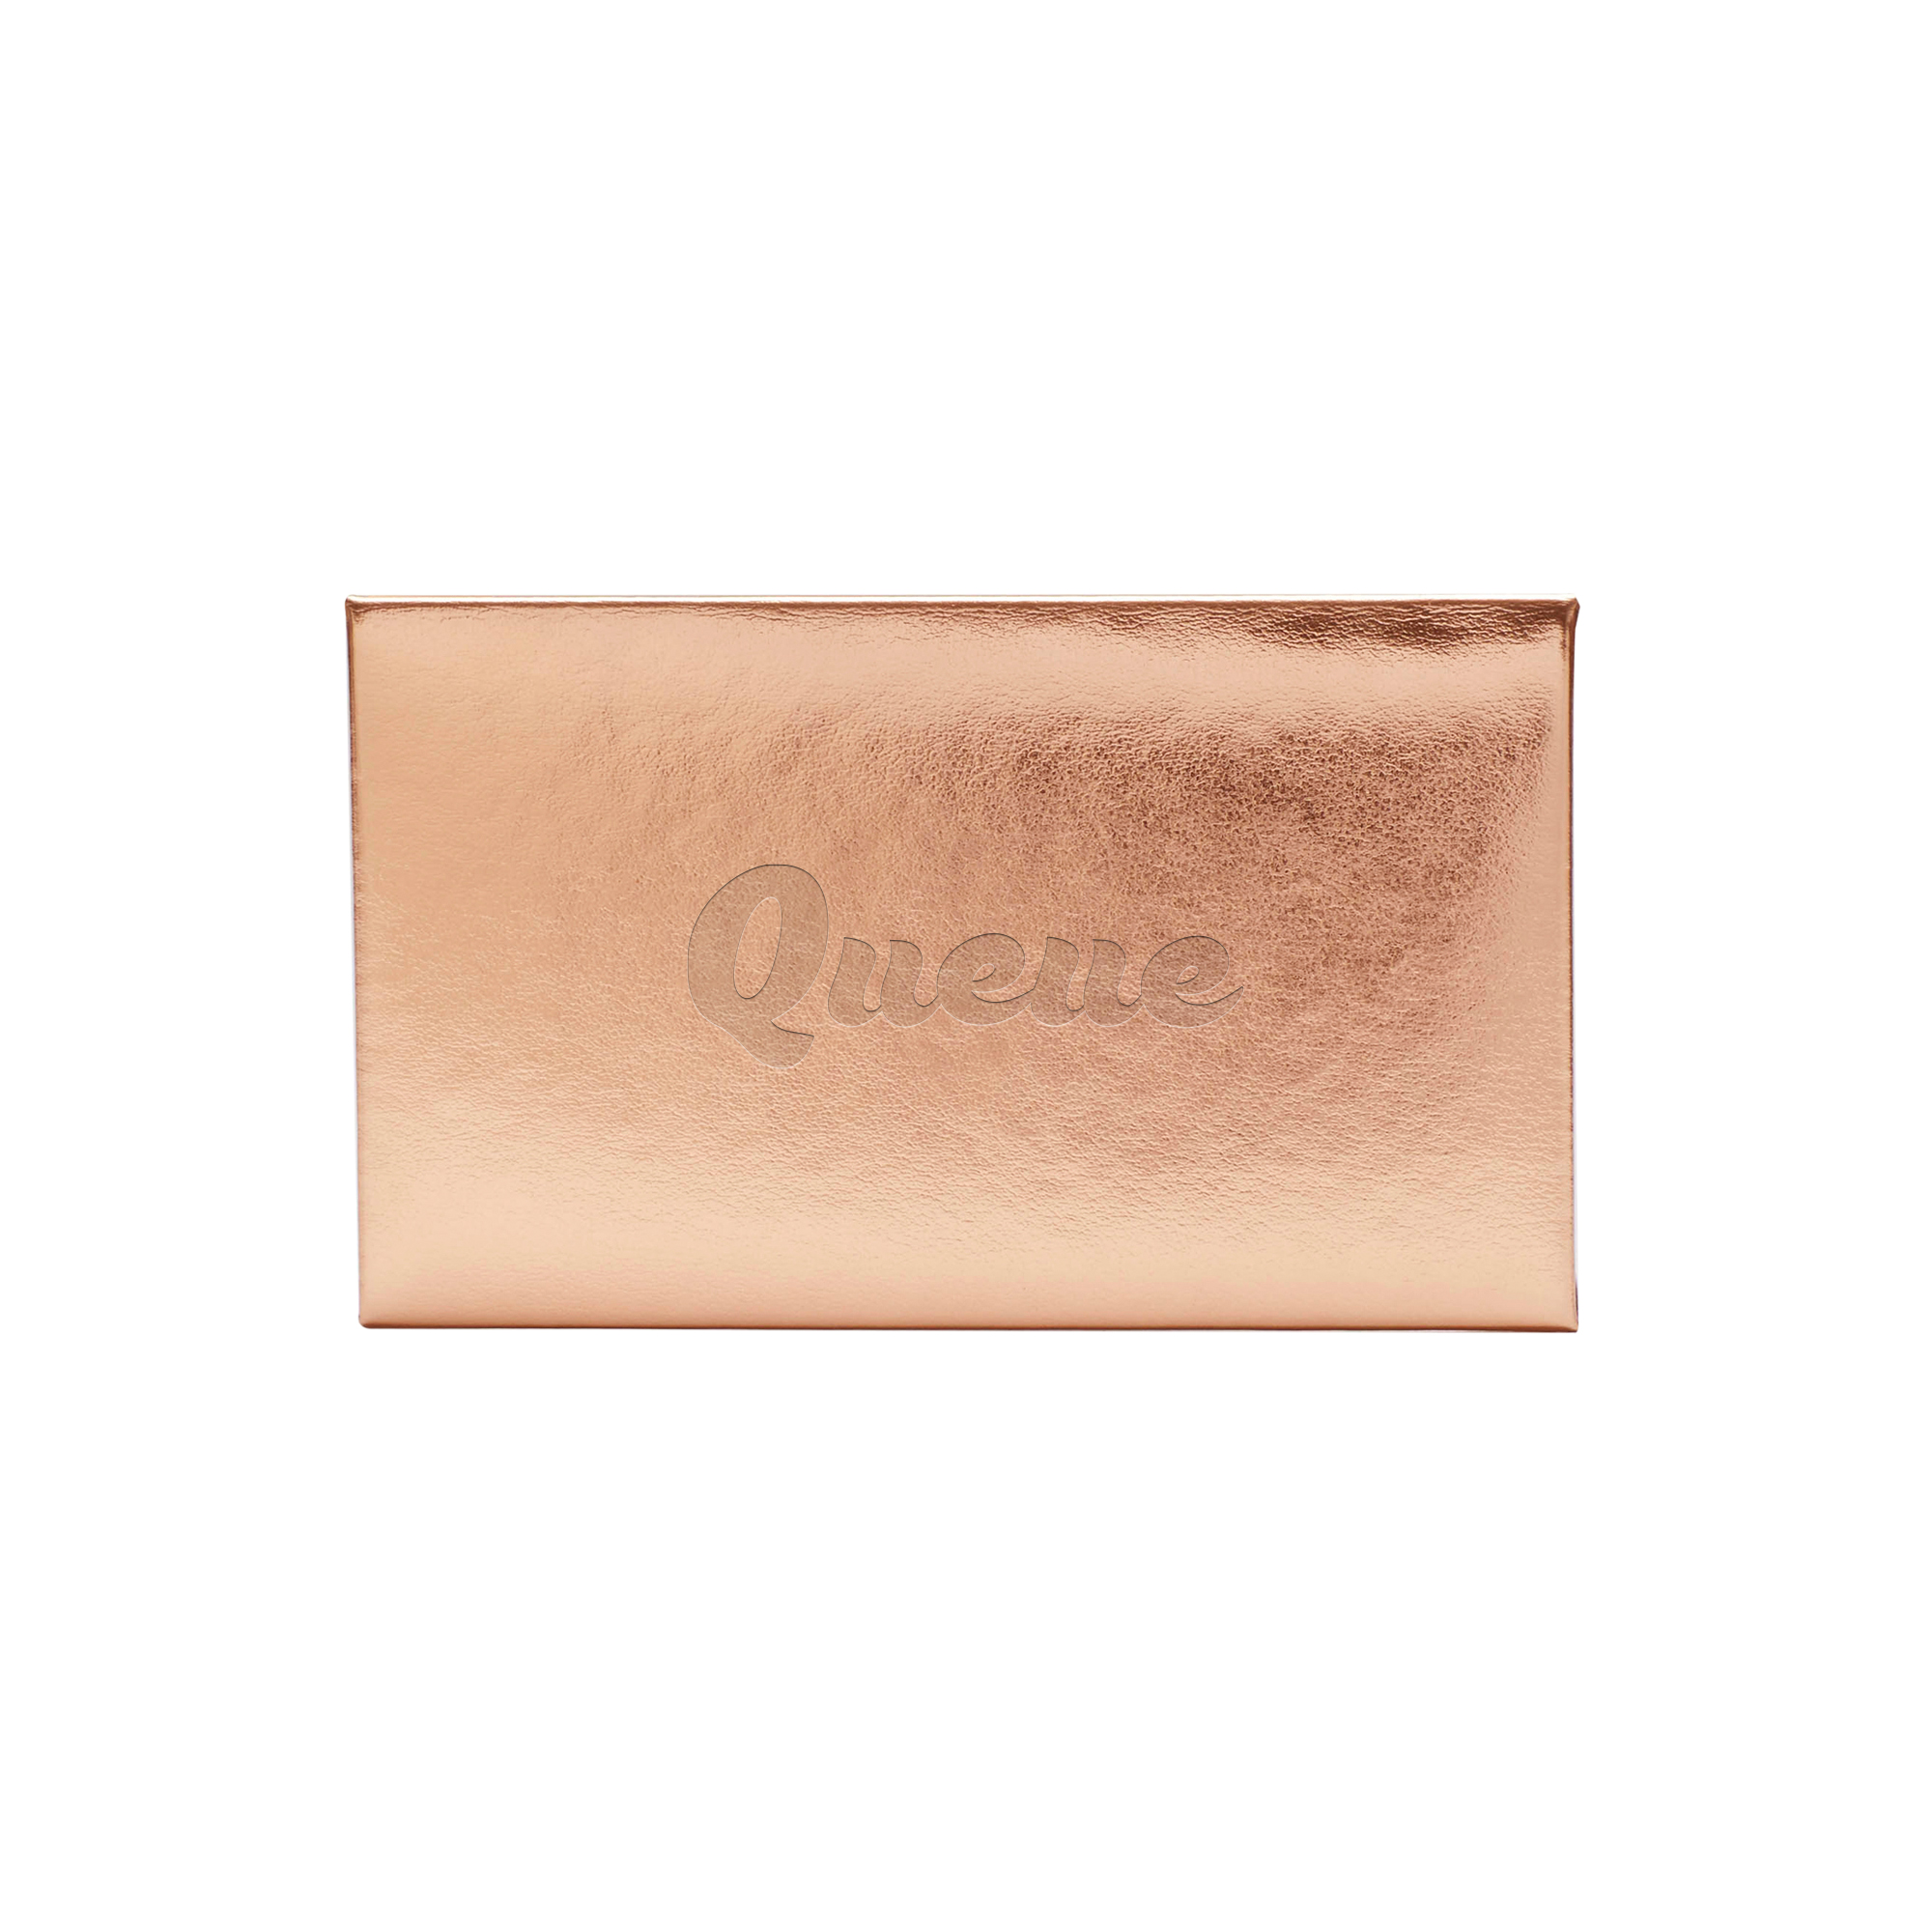 Customized Business Card Holders | Customized Office Supplies| Poppin